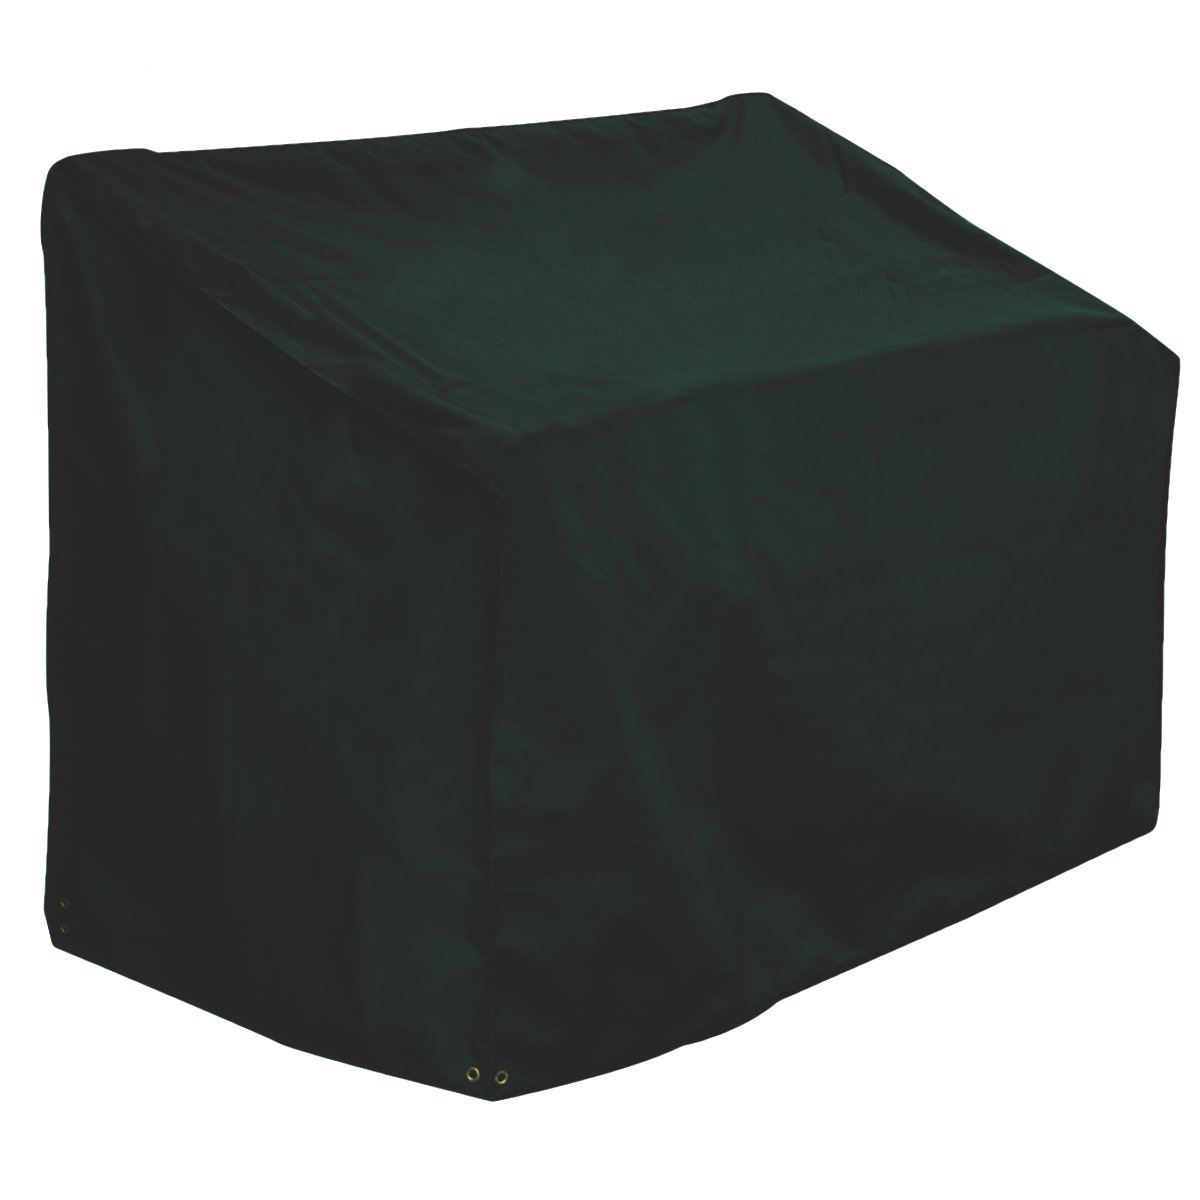 Amazon com  Bosmere C605 2 Seat Bench Cover  53  Long x 26  Deep x 35  High  Back x 25  Front  Green  Garden   Outdoor. Amazon com  Bosmere C605 2 Seat Bench Cover  53  Long x 26  Deep x